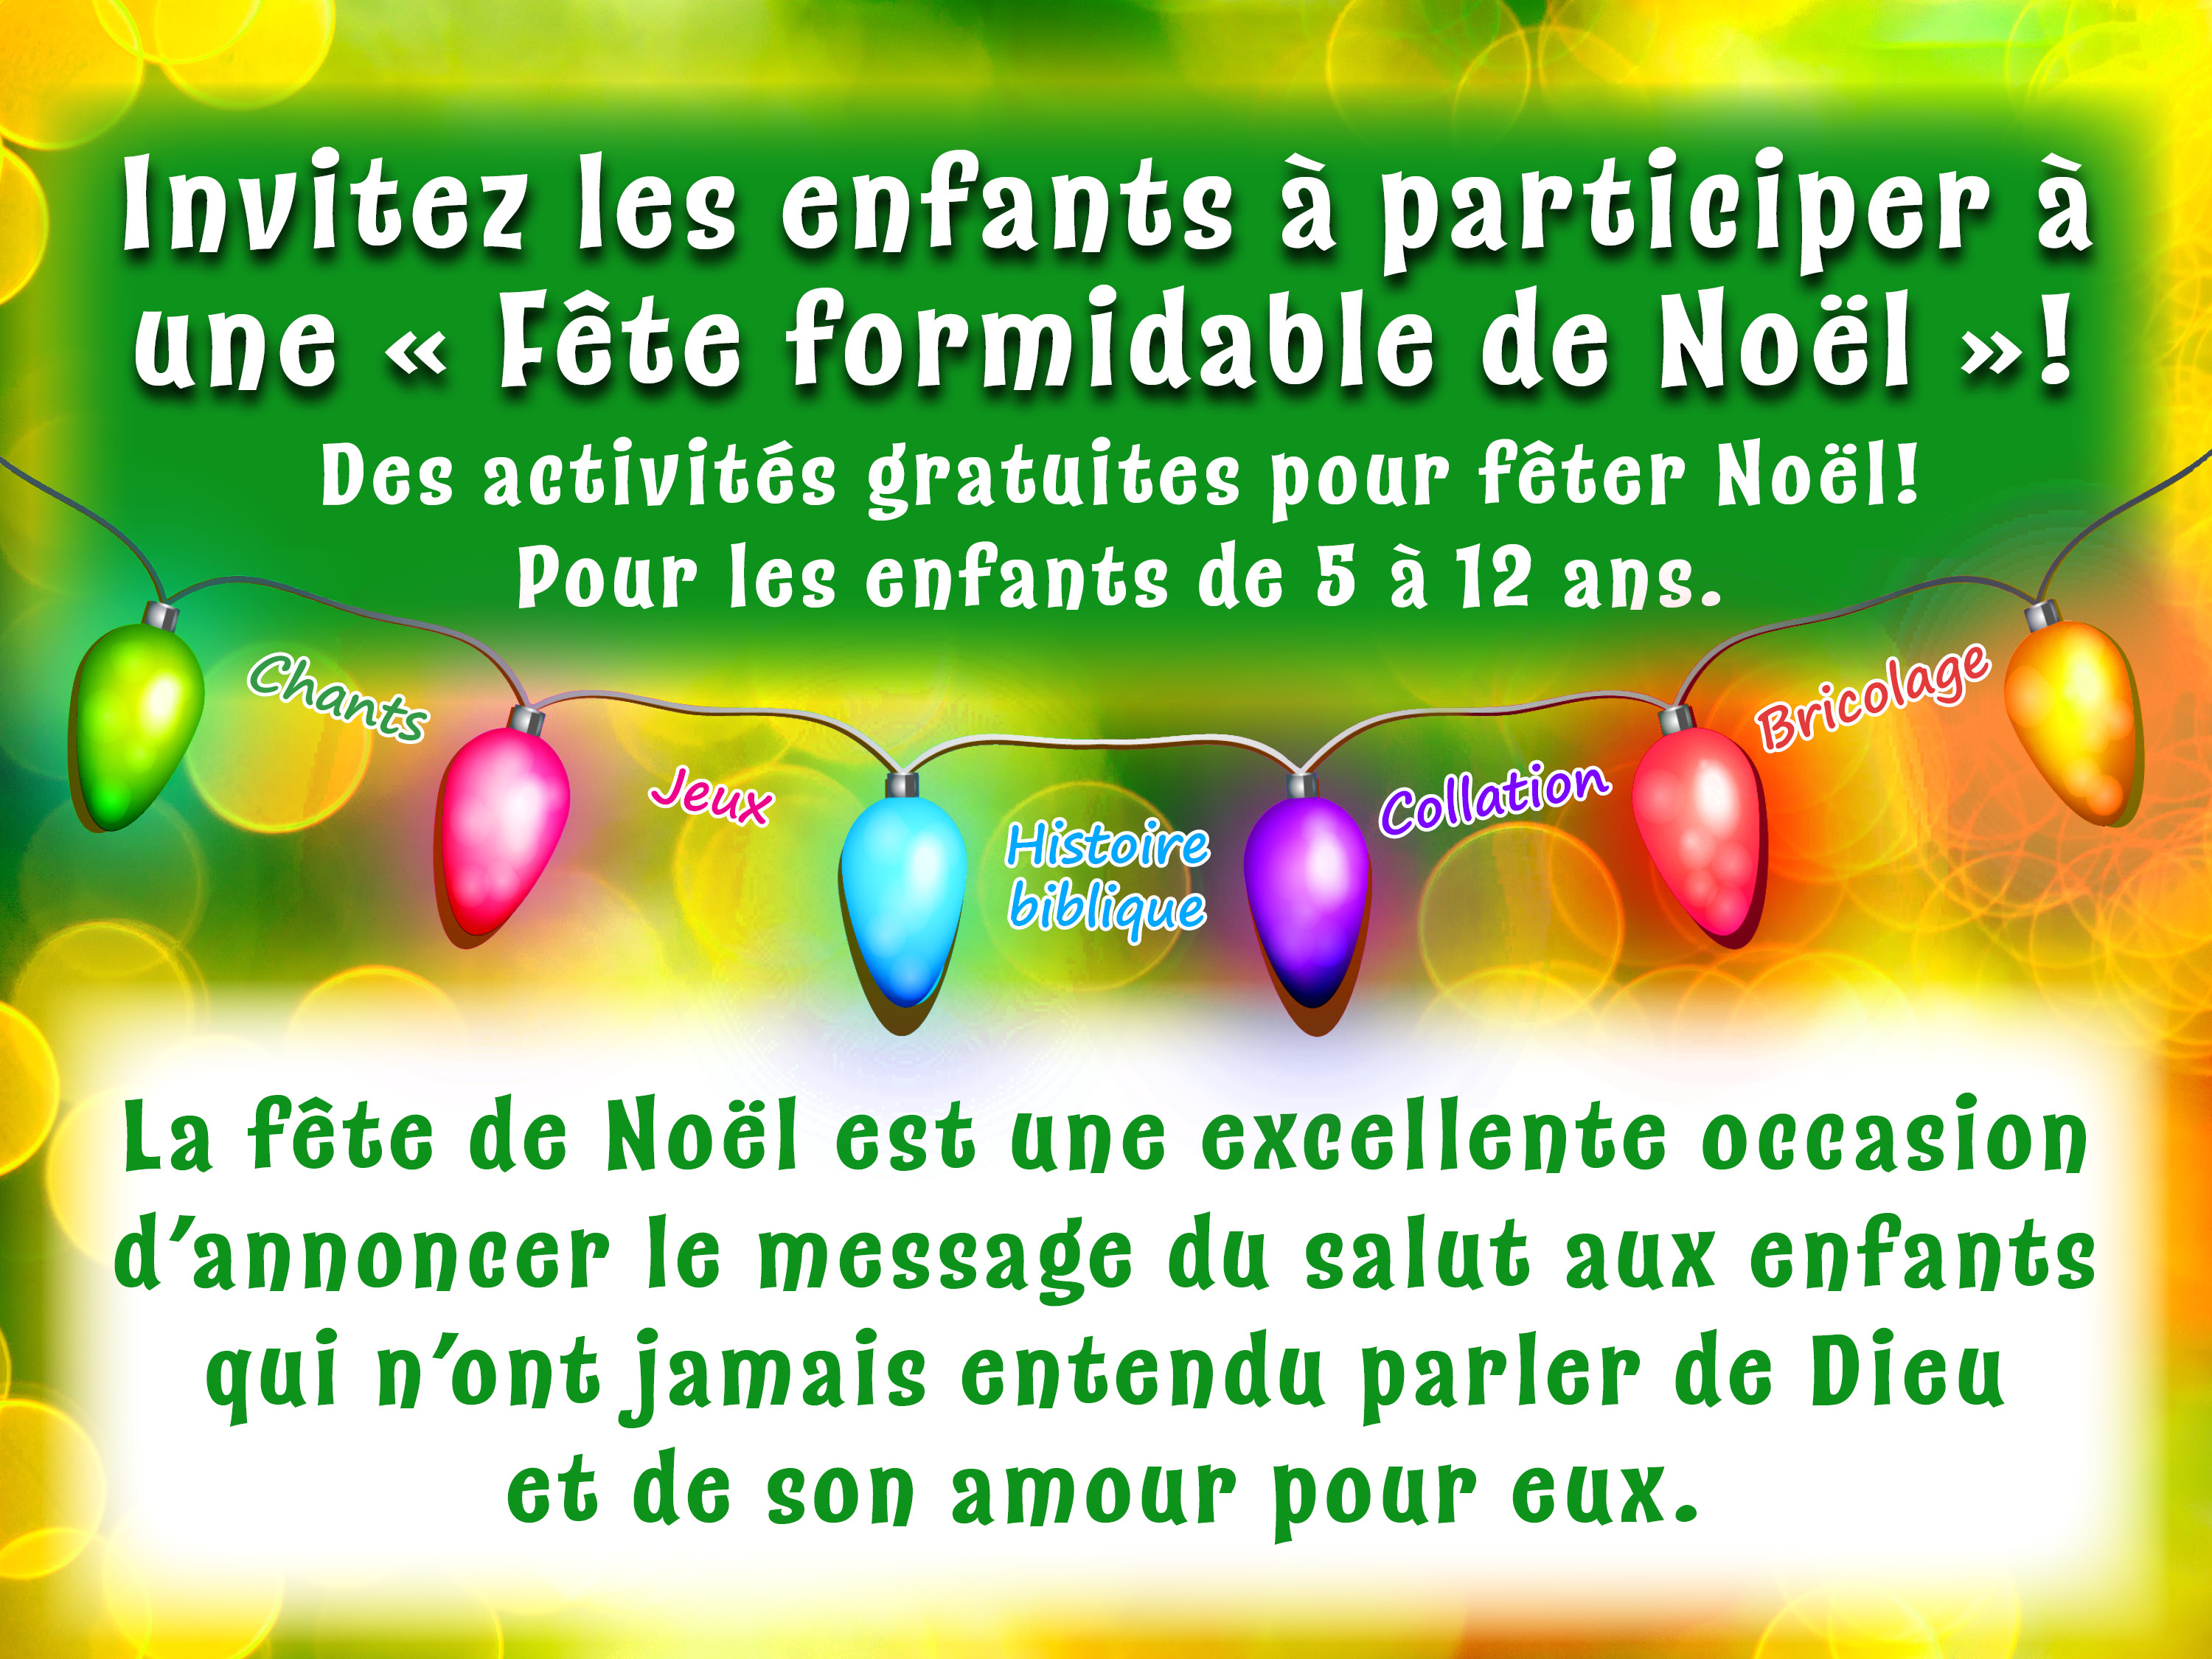 Fete formidable de Noel